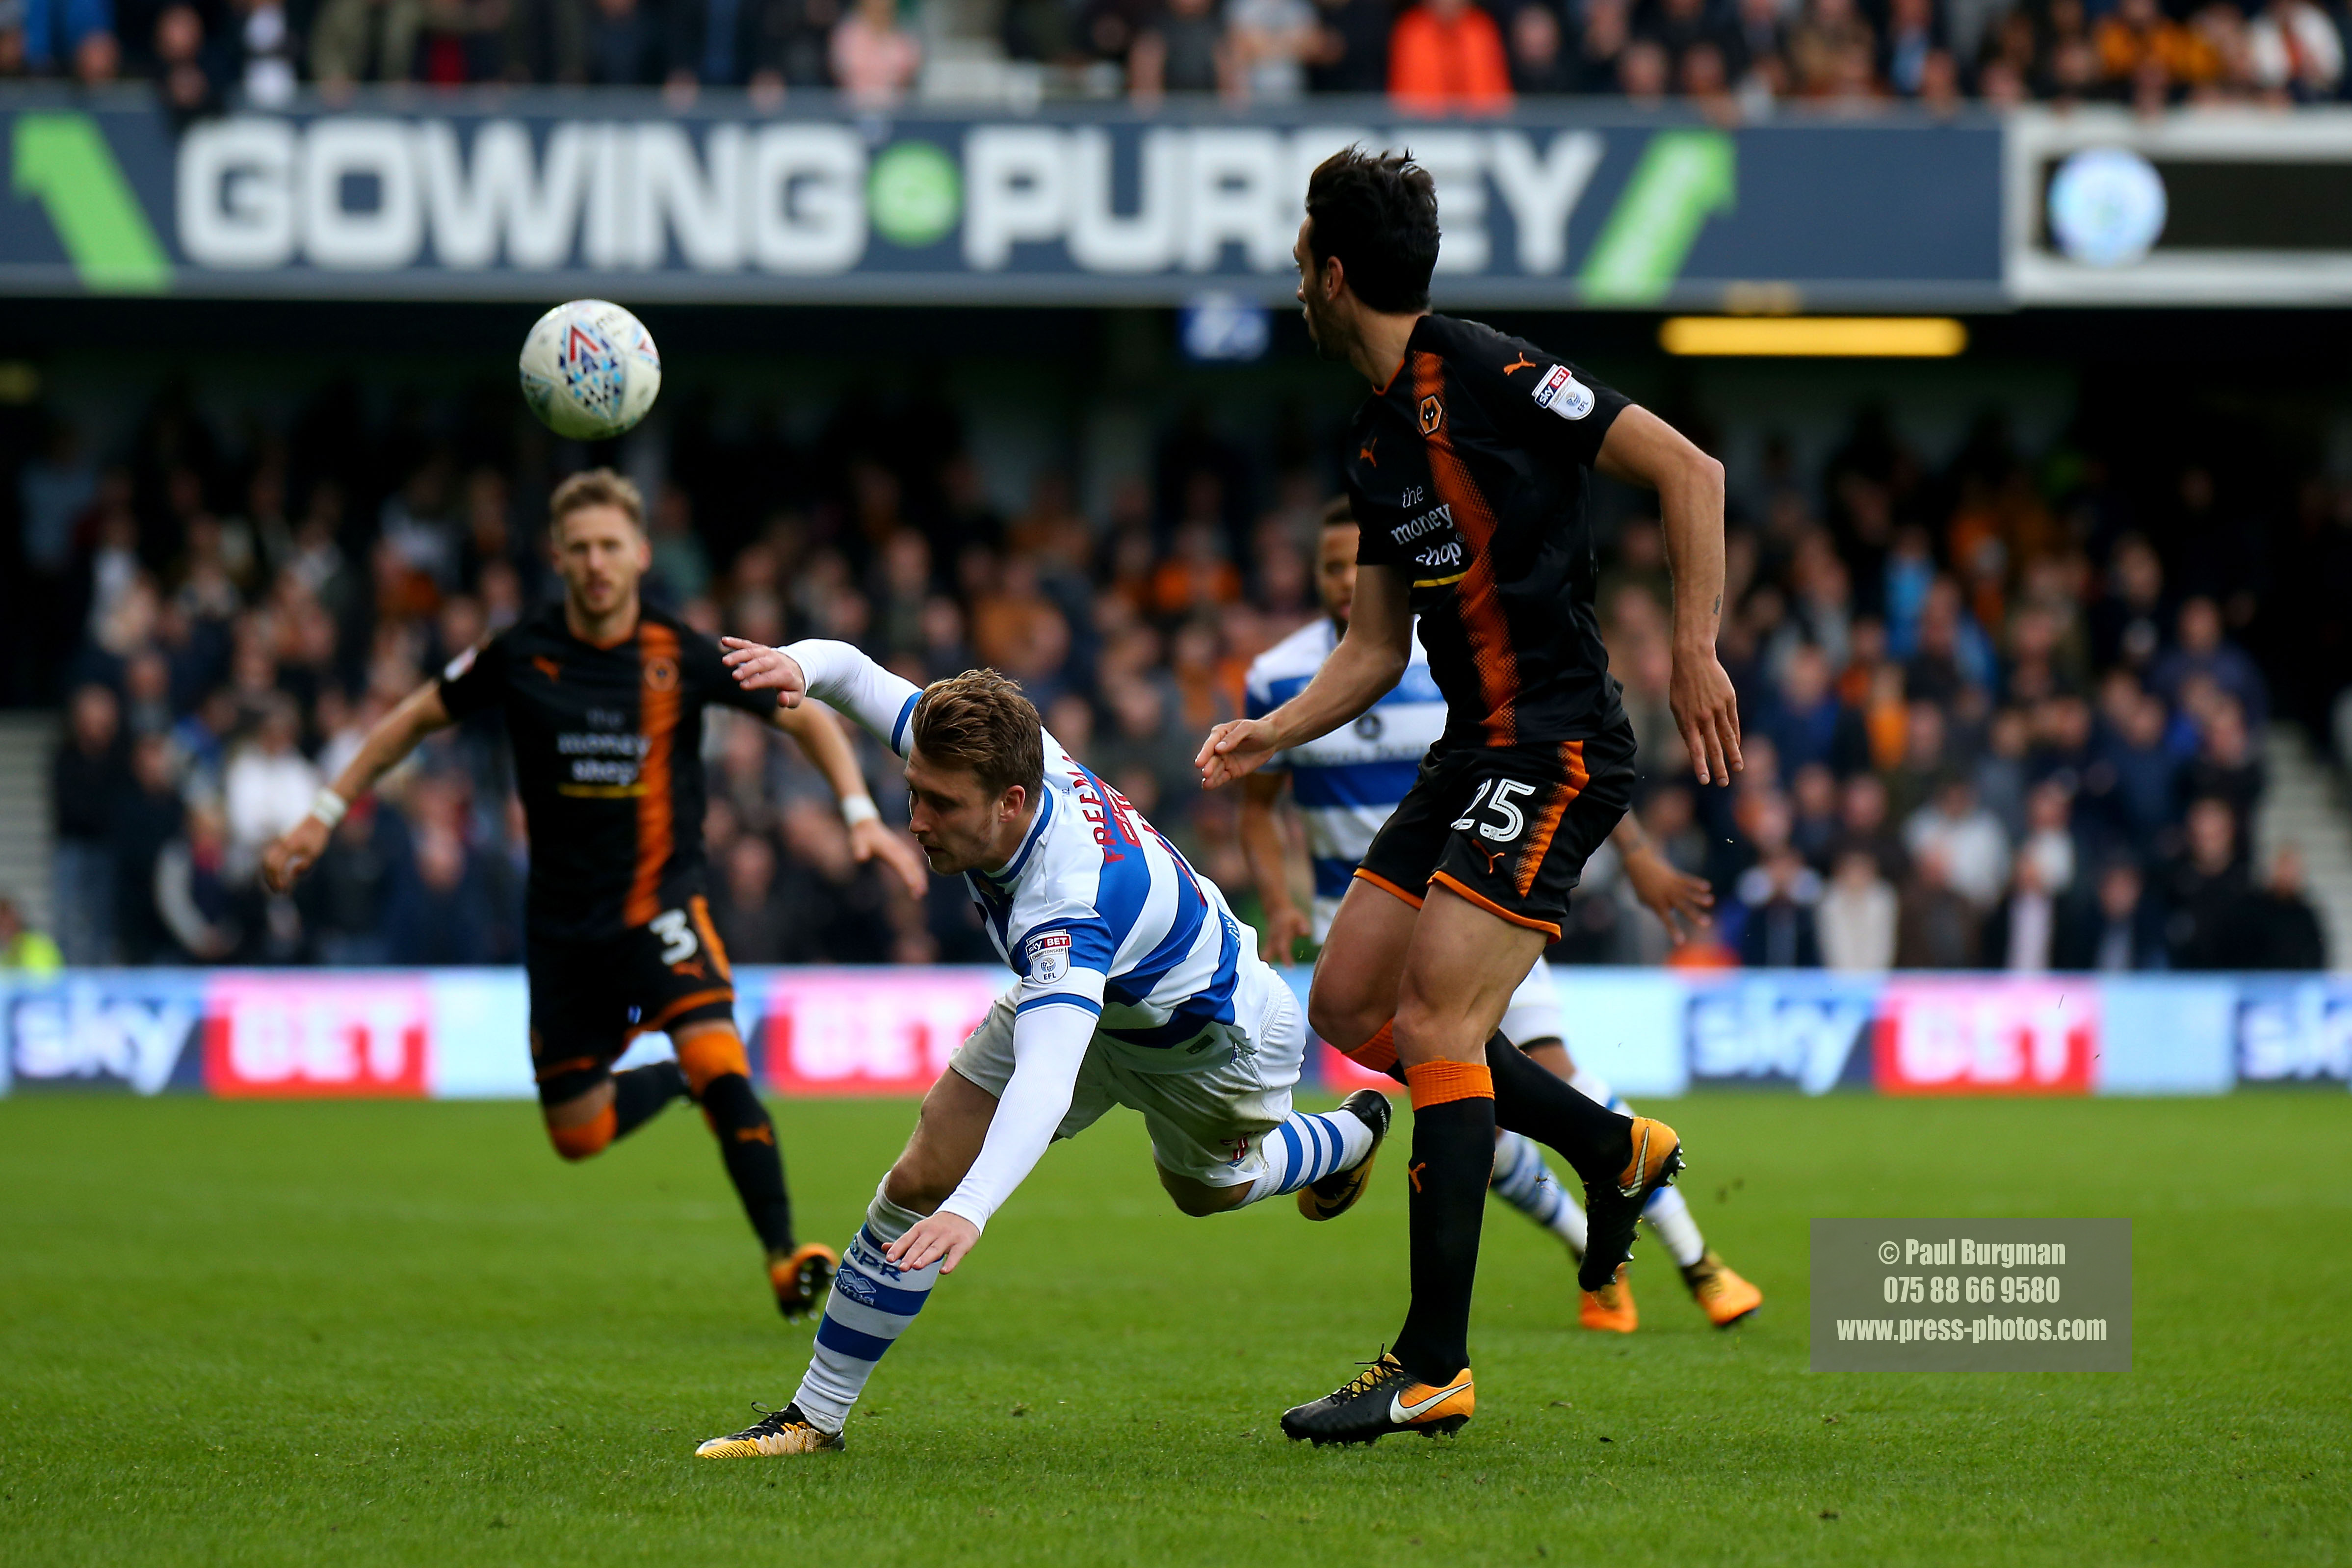 Qpr v wolves betting setting up a computer to mine bitcoins with cpu